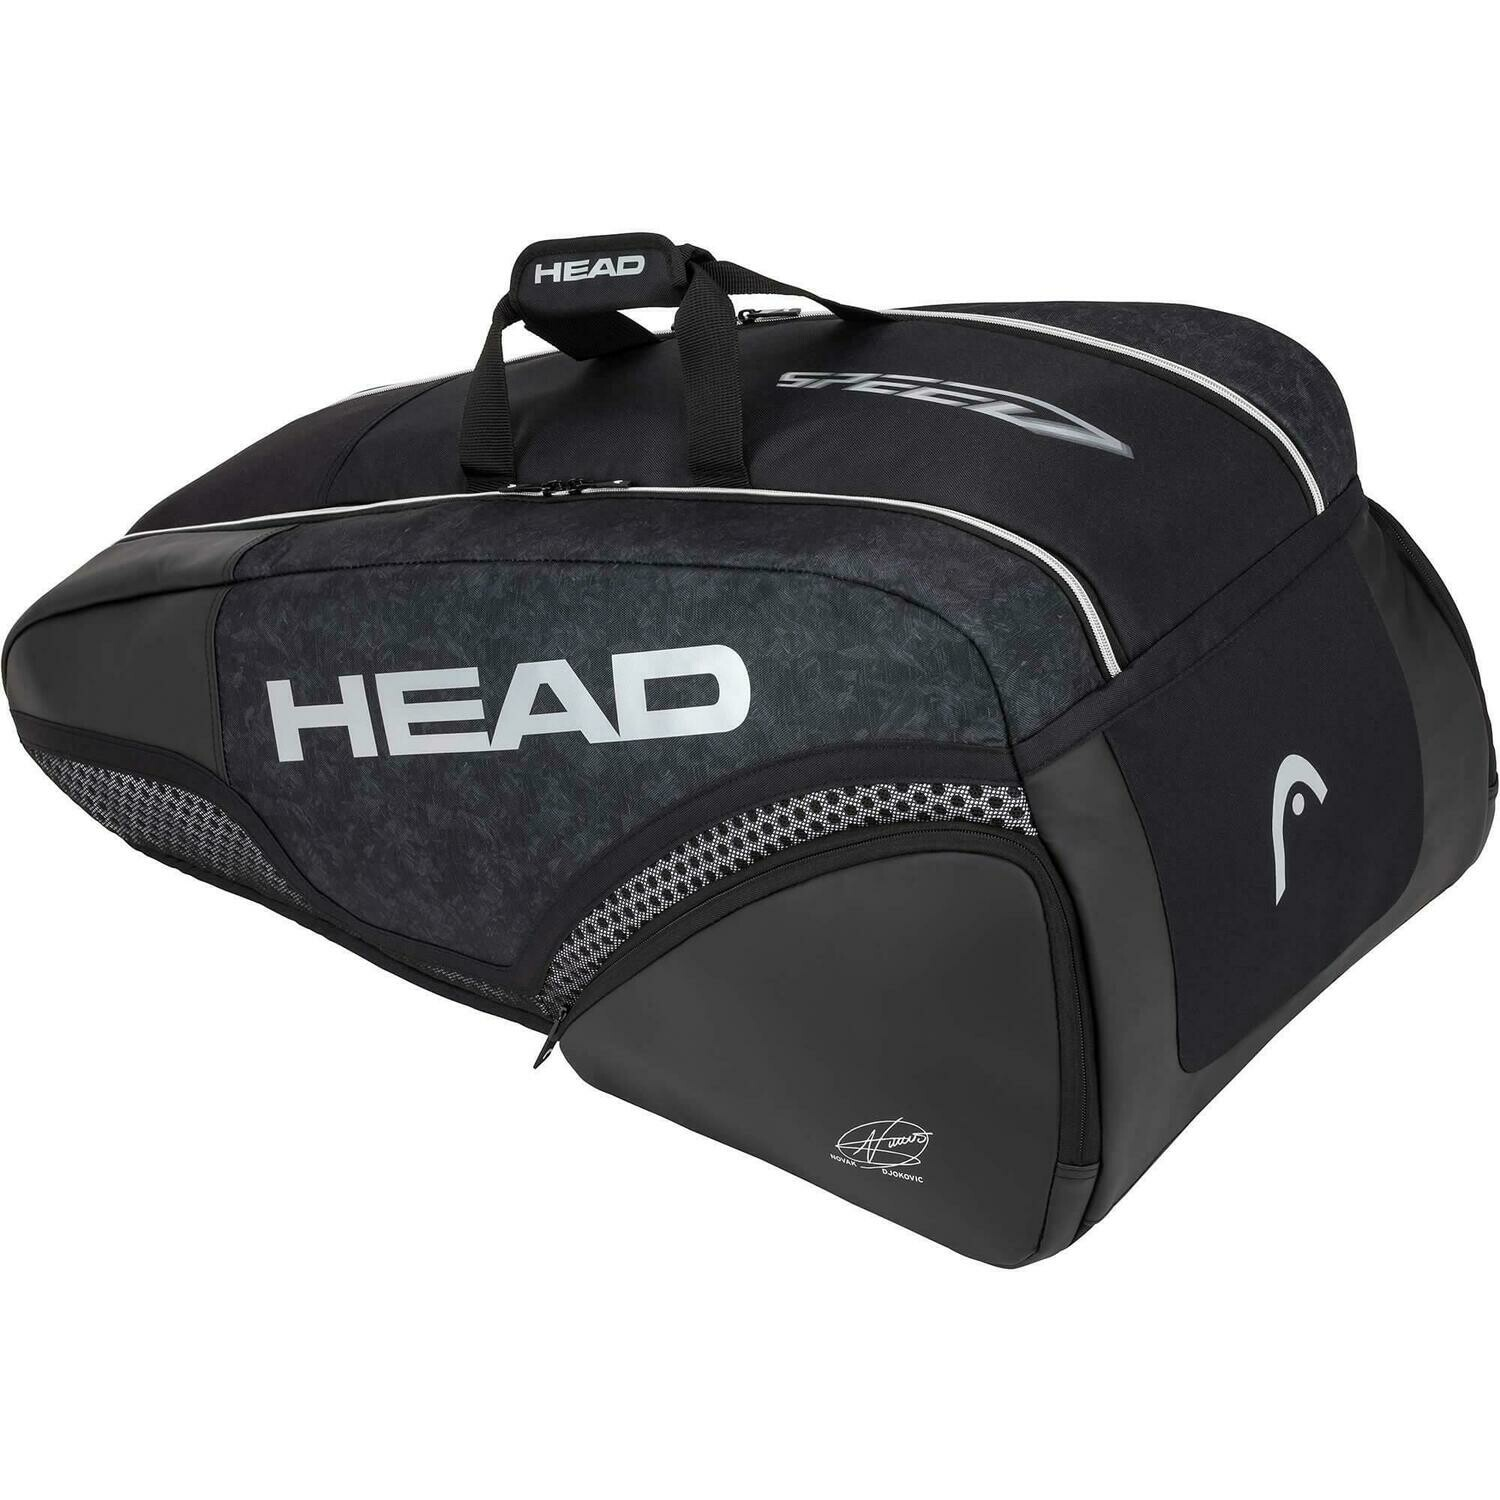 Head Djokovic 9R Supercombi Bag - Black